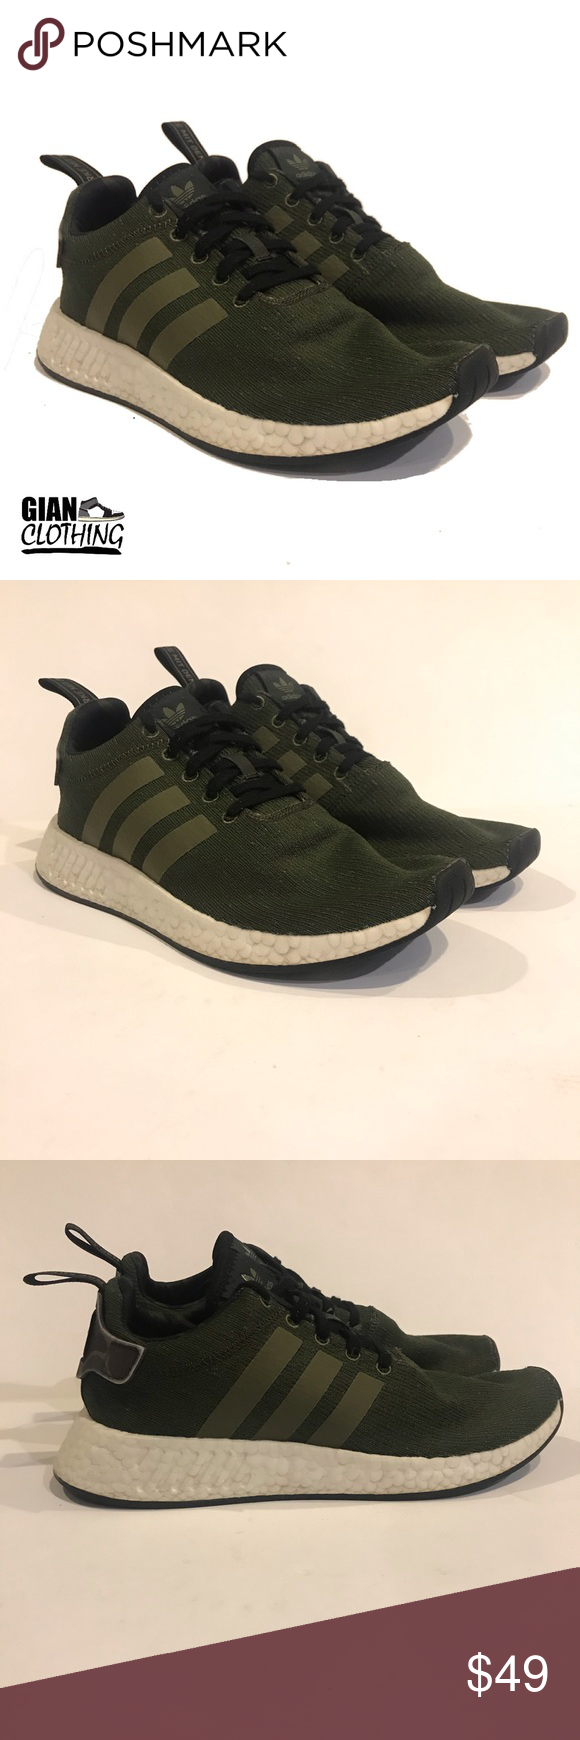 dbc6566a2 Adidas NMD R2 Green   Camo Men s size 8 PRE-OWNED Adidas NMD R2 ...